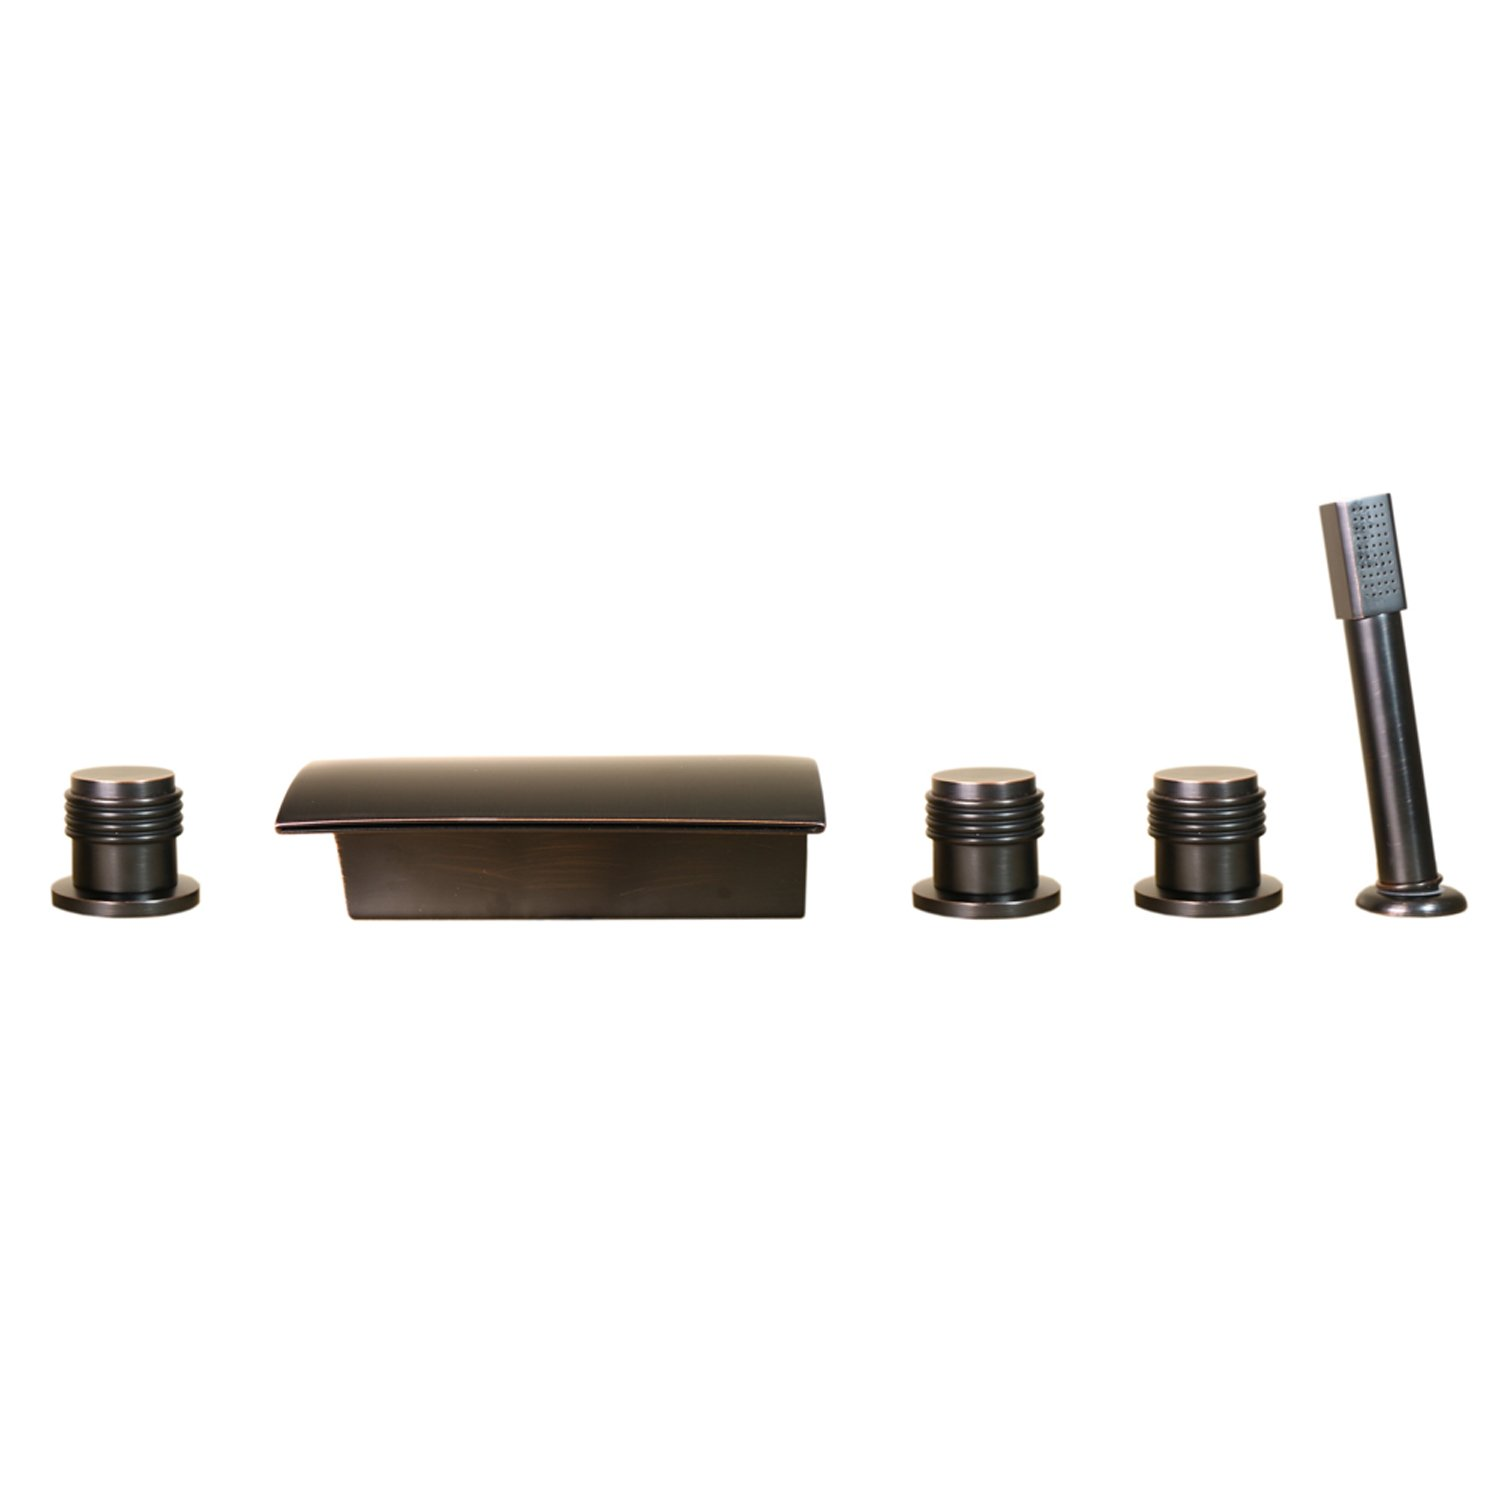 Deck Mount Bathroom sink / tub Faucet with Hand Shower in oil rubbed bronze by HTU